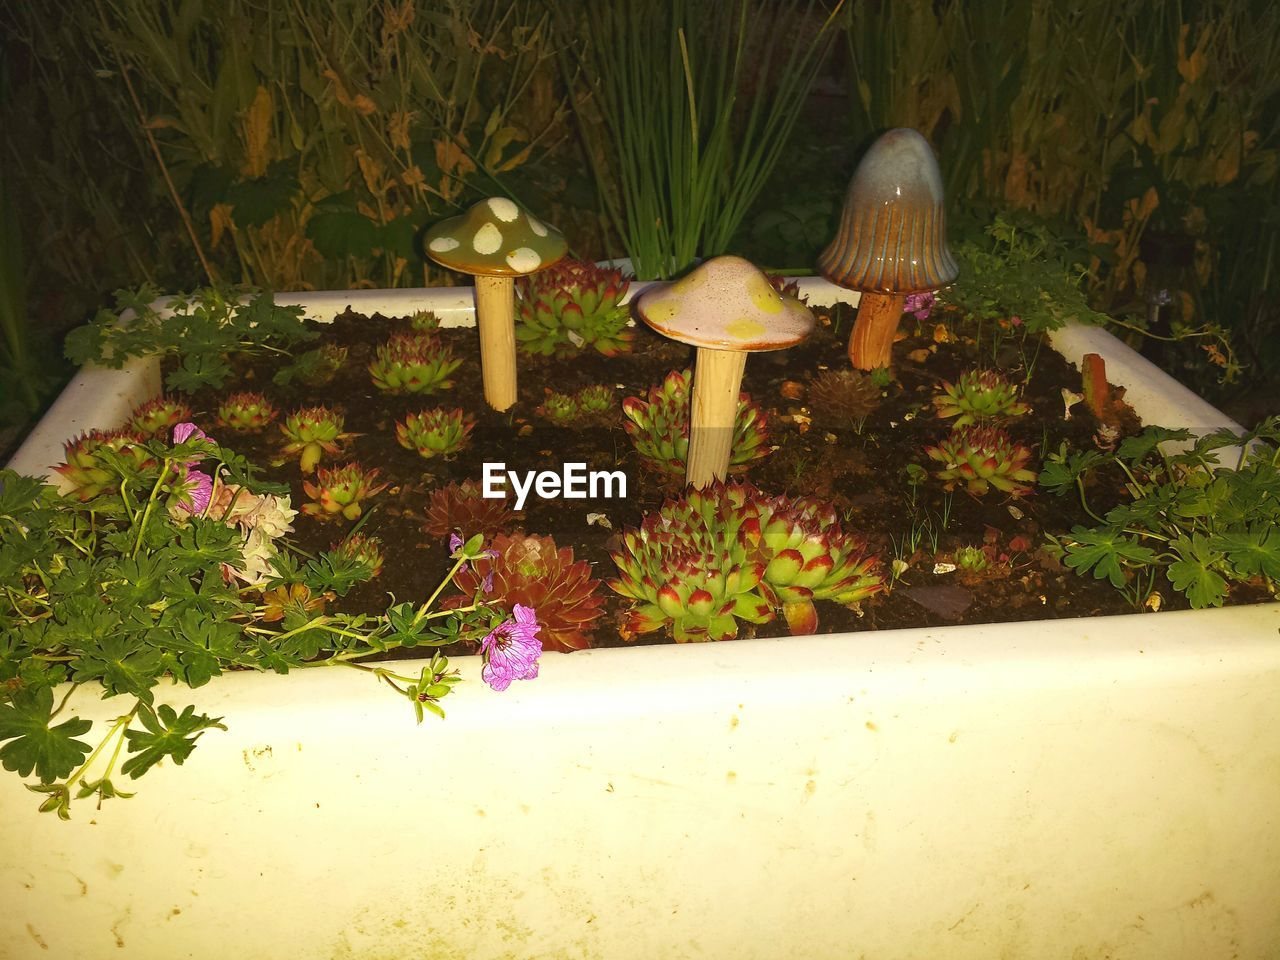 Artificial mushrooms and plants in garden